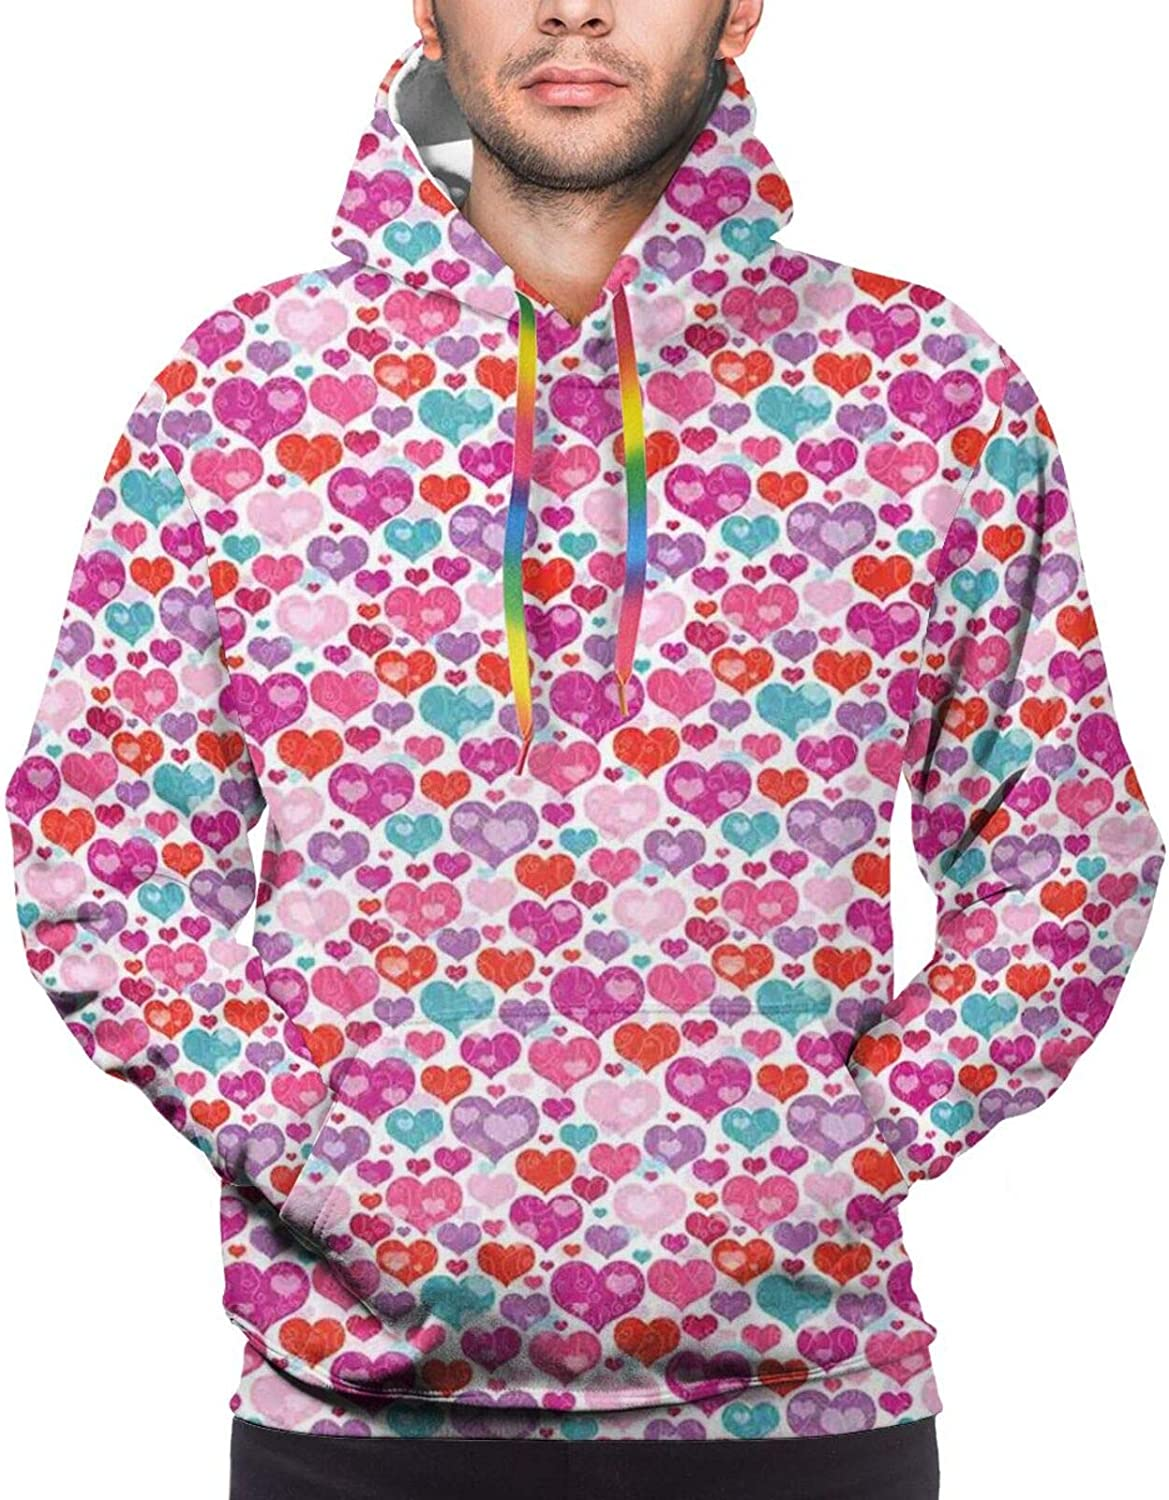 Men's Hoodies Sweatshirts,Love Themed Colorful Pattern with Nested Hearts On Plain Backdrop Lovely